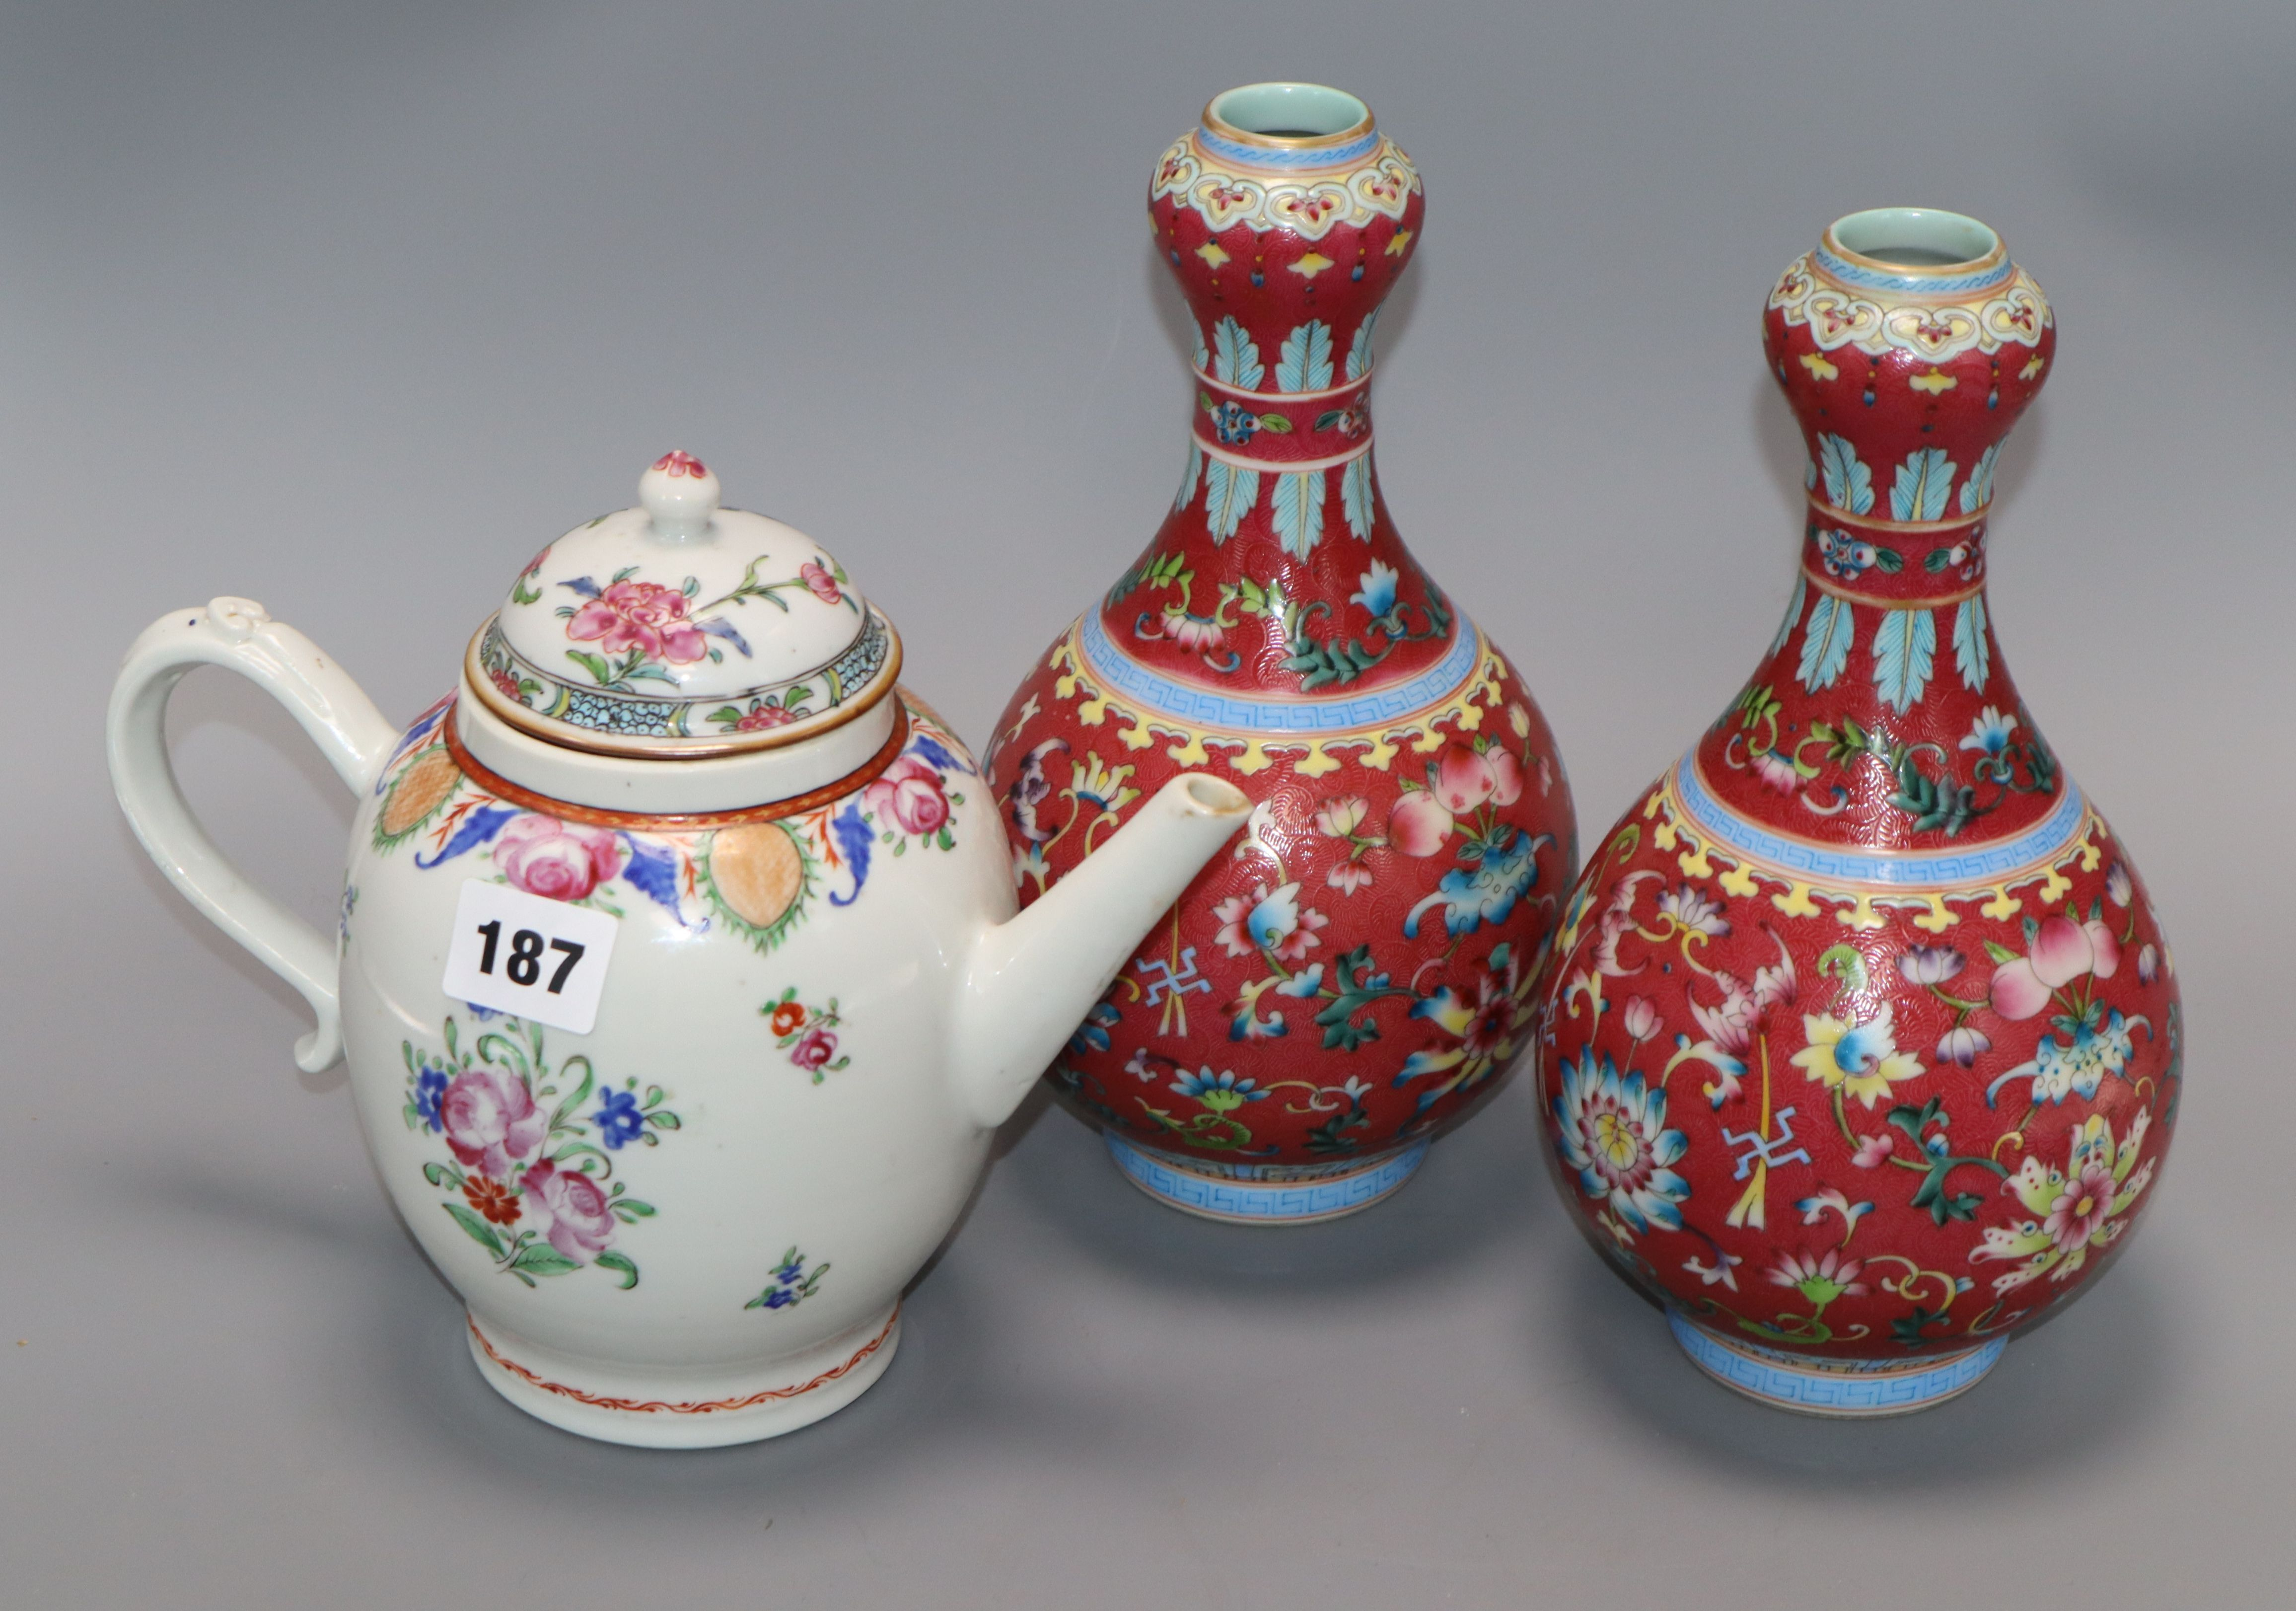 Lot 187 - A pair of Chinese garlic neck vases and a famille rose teapot